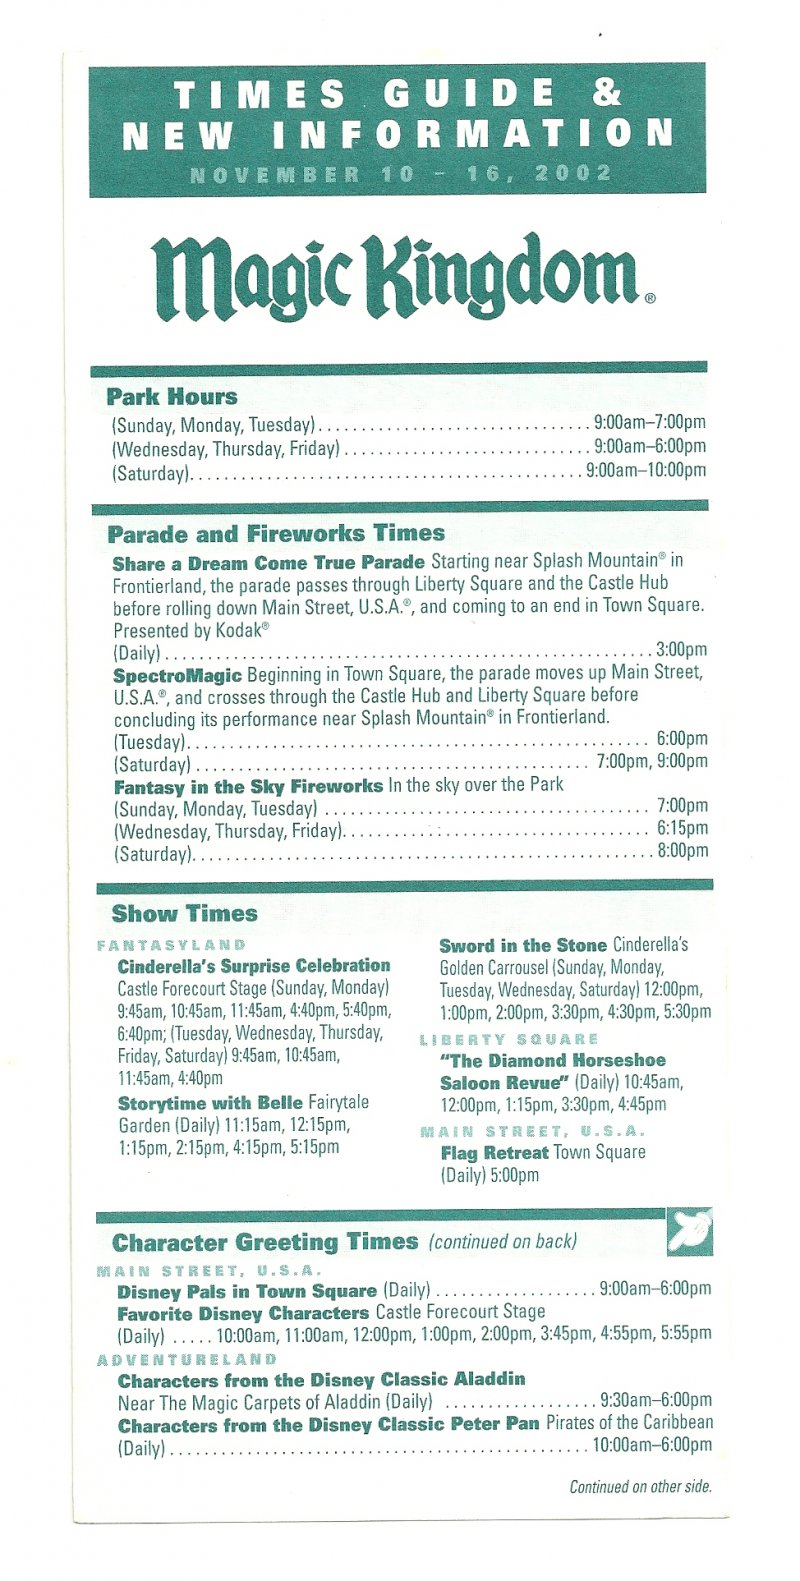 Image 0 of 2002 walt disney world Magic Kingdom Times guide Flyer Nov 10-16